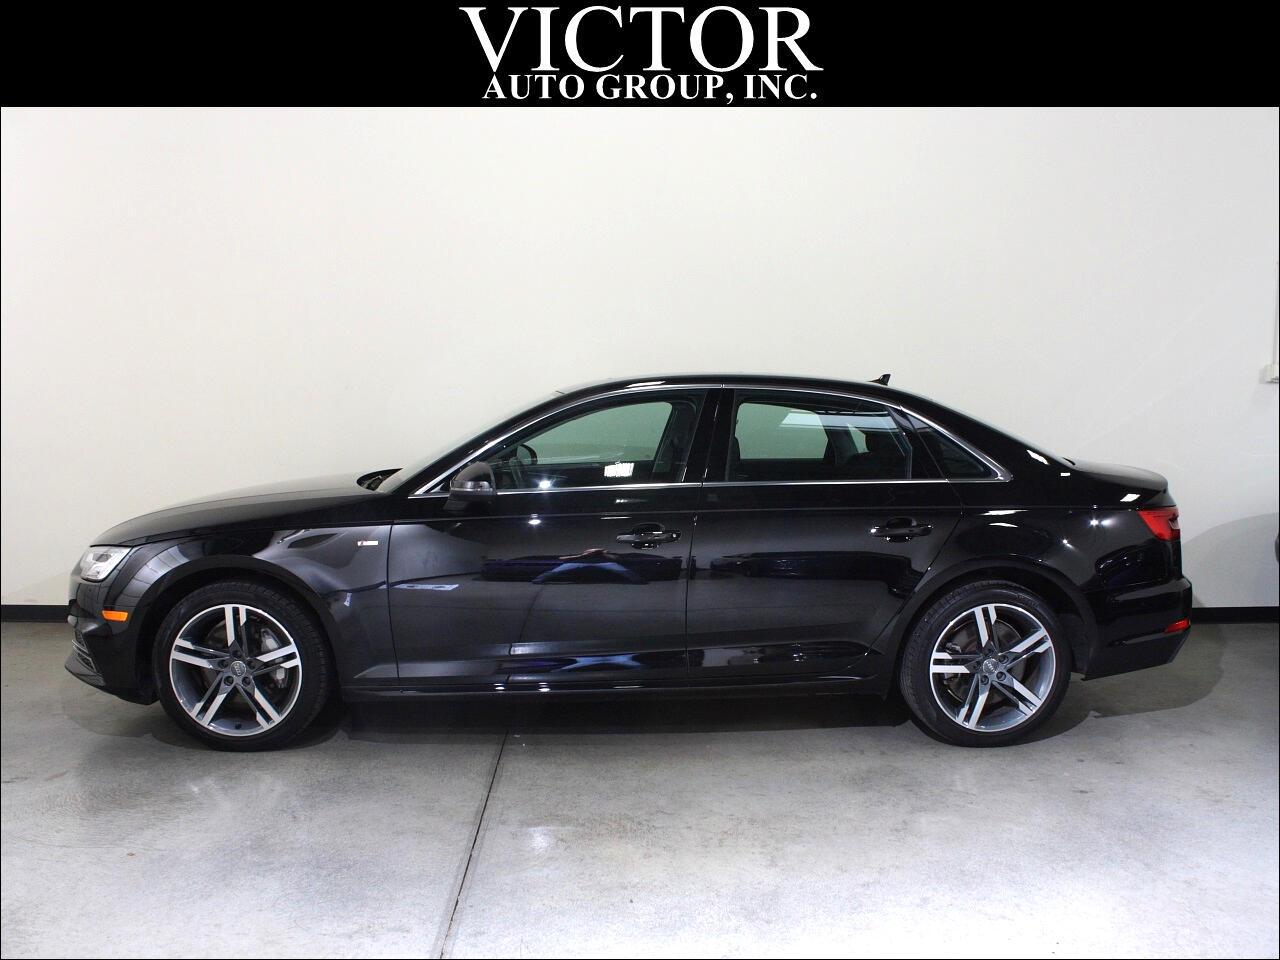 2017 Audi A4 2.0T quattro Premium Plus Sedan AWD